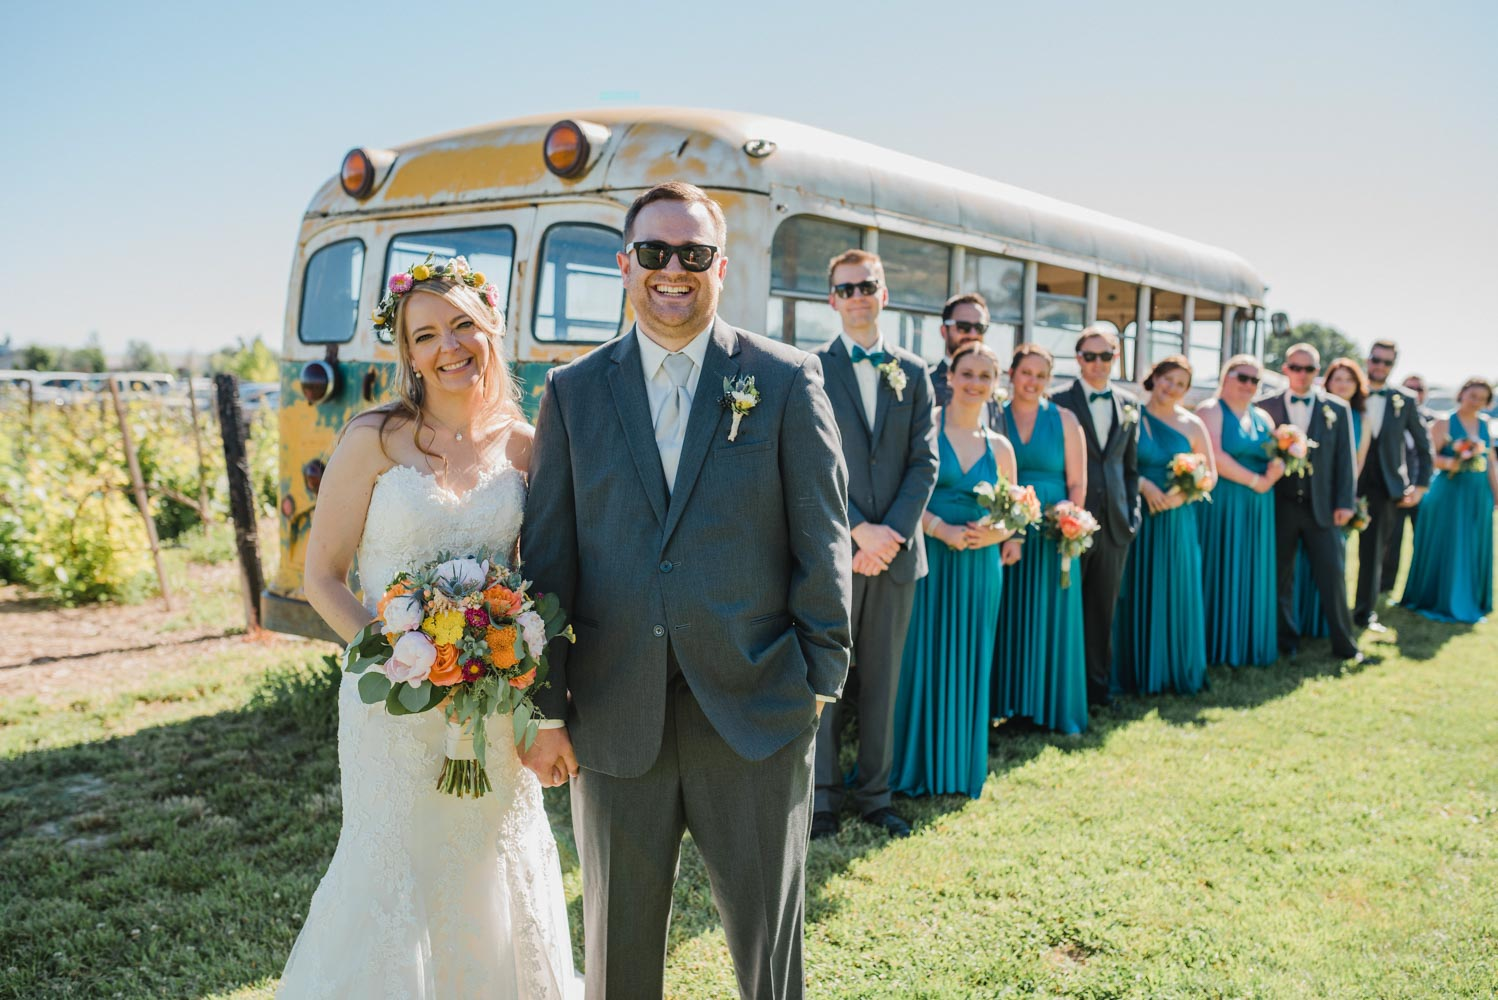 Bride and groom in foreground, with wedding party standing by yellow school bus behind them